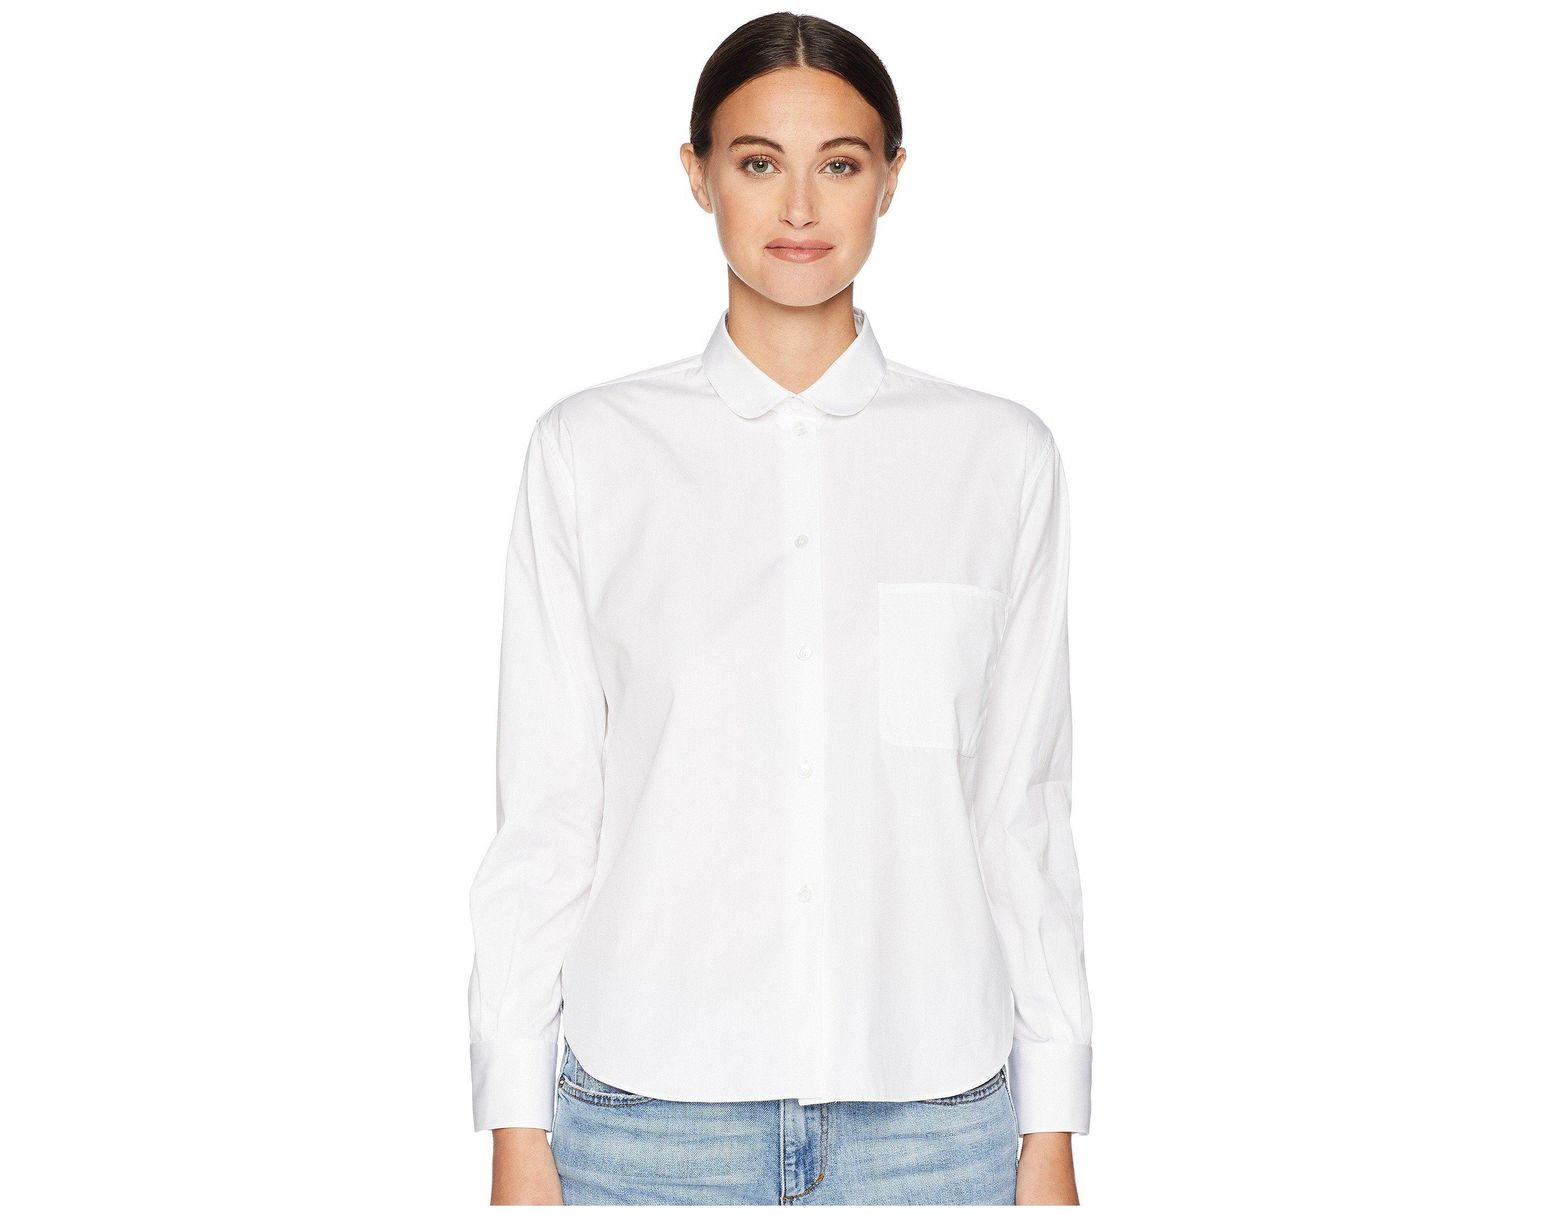 429acdcf6f94ac Jil Sander Navy Long Sleeve Shirt Round Collar Pocket On The Front in White  - Lyst